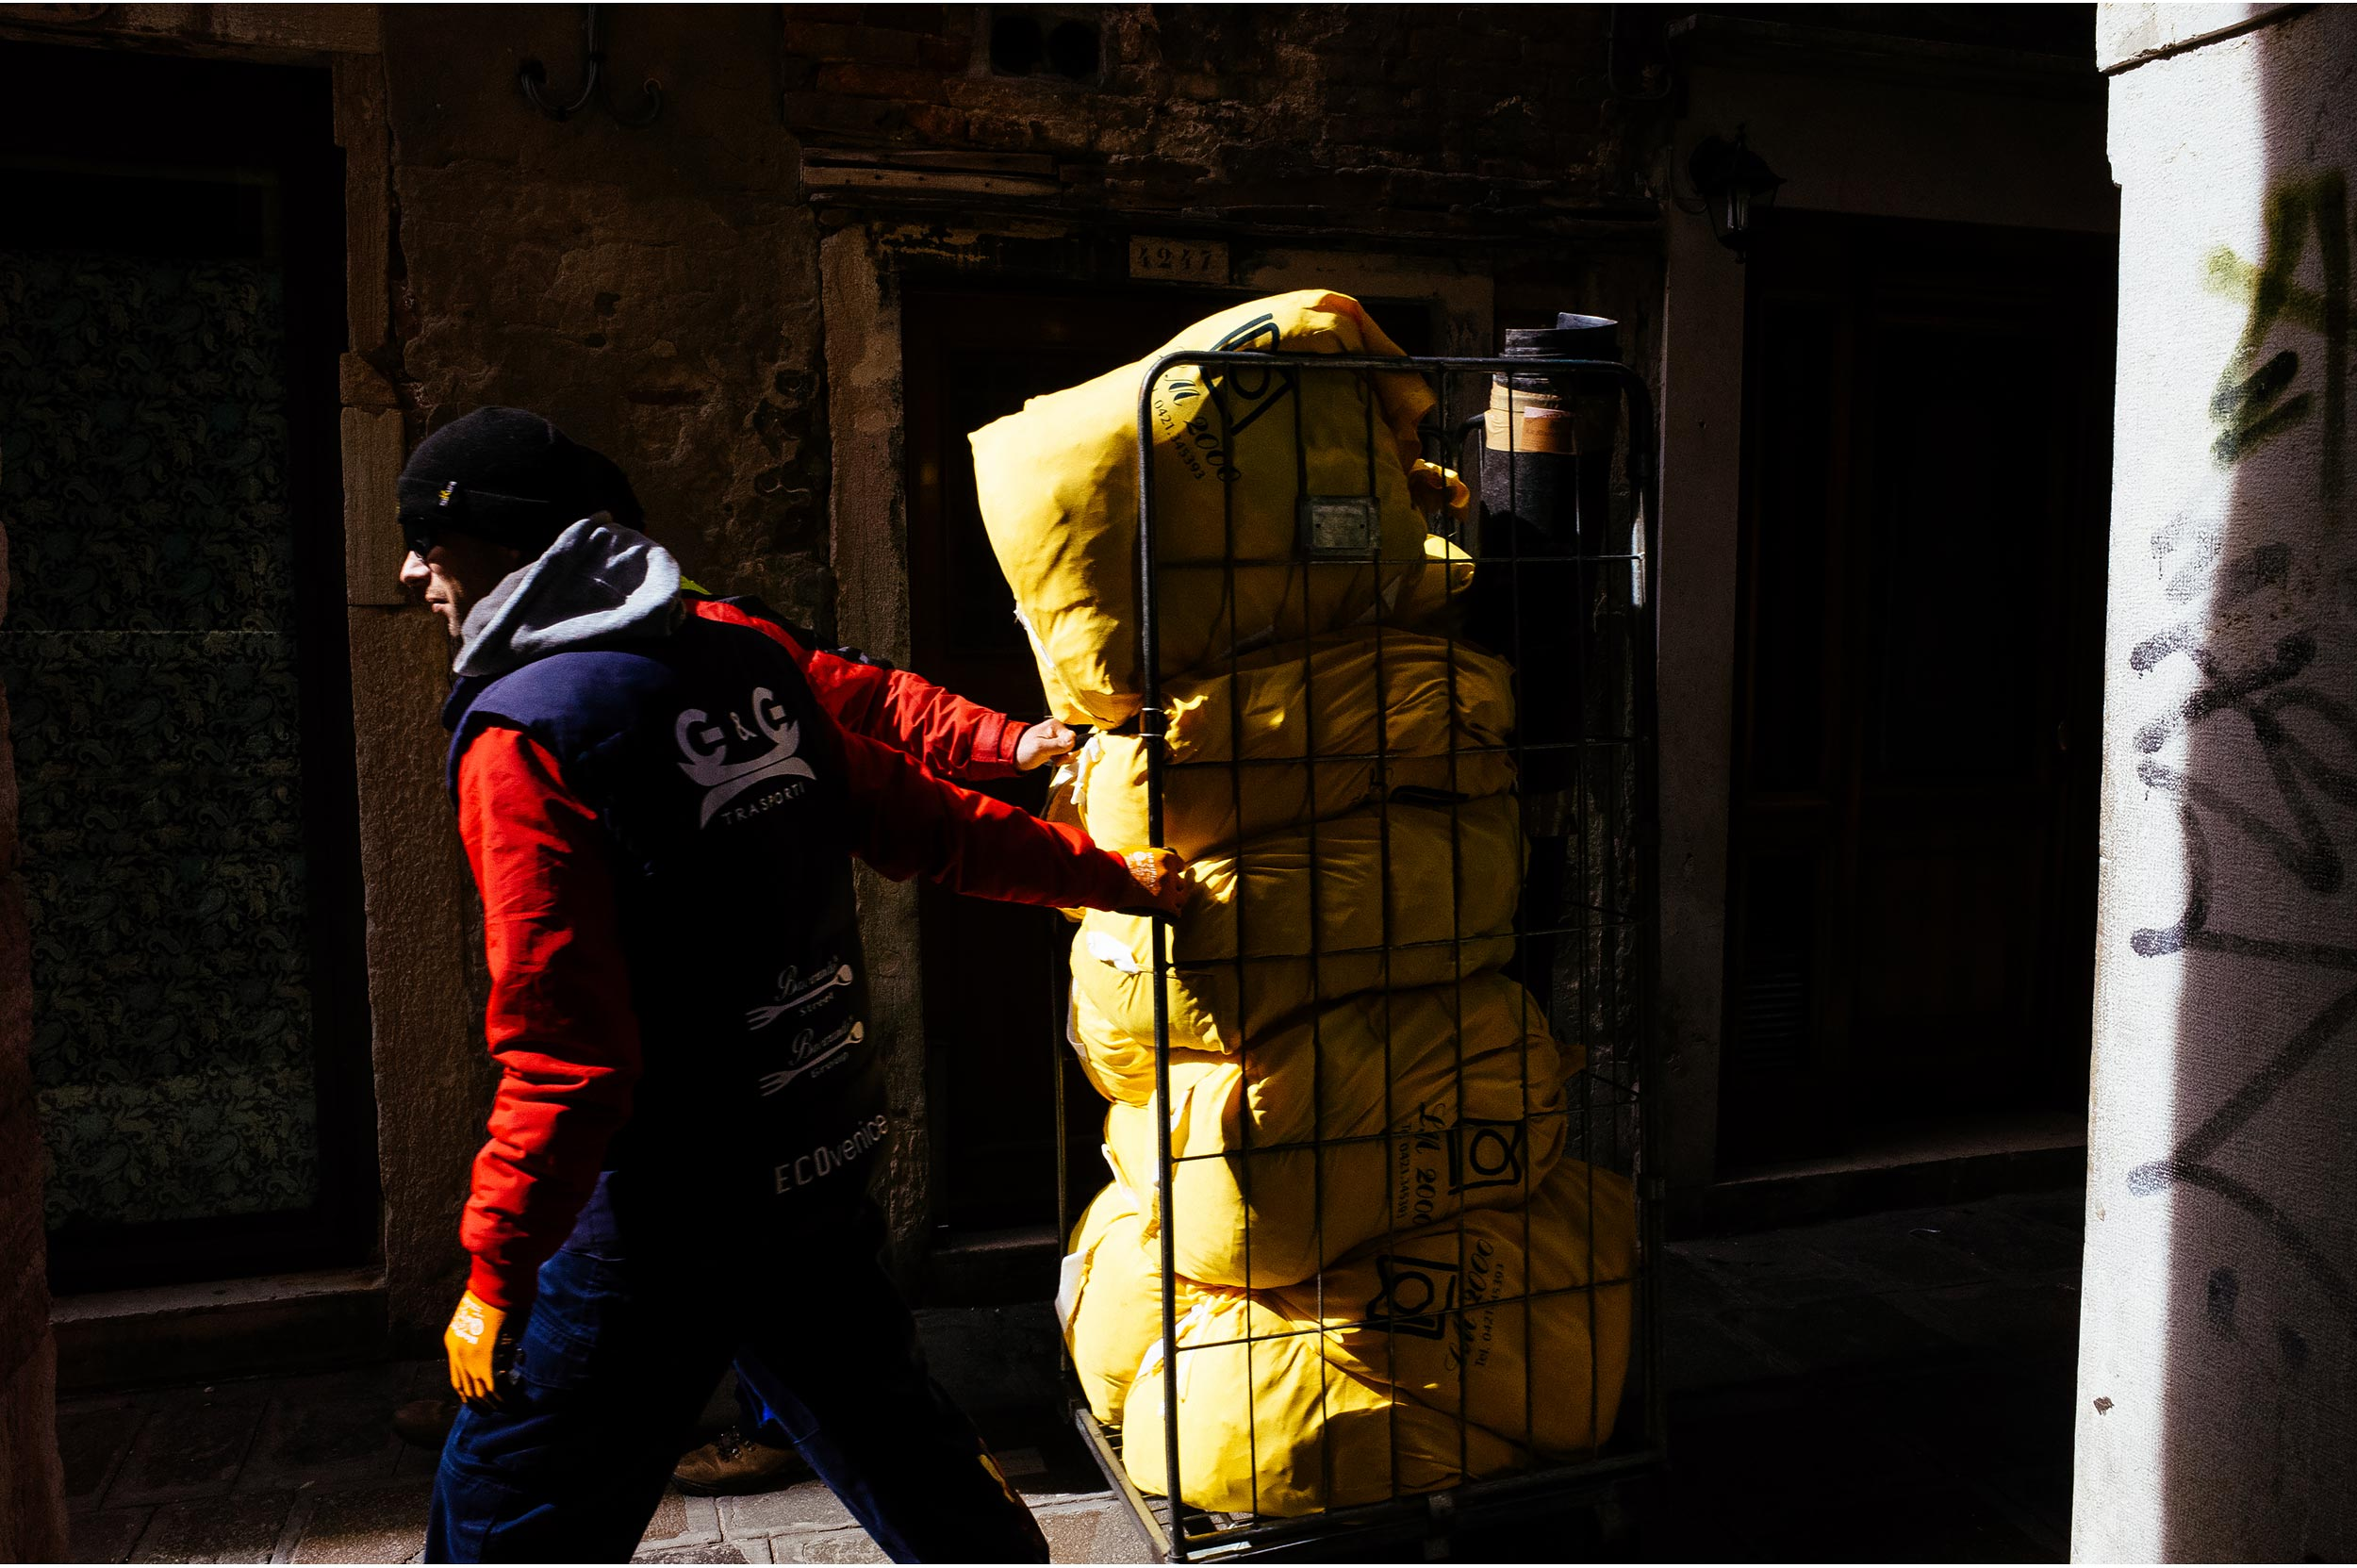 Venice, Italy, 2016. Two workers carrying some stuff look like one having three arms.